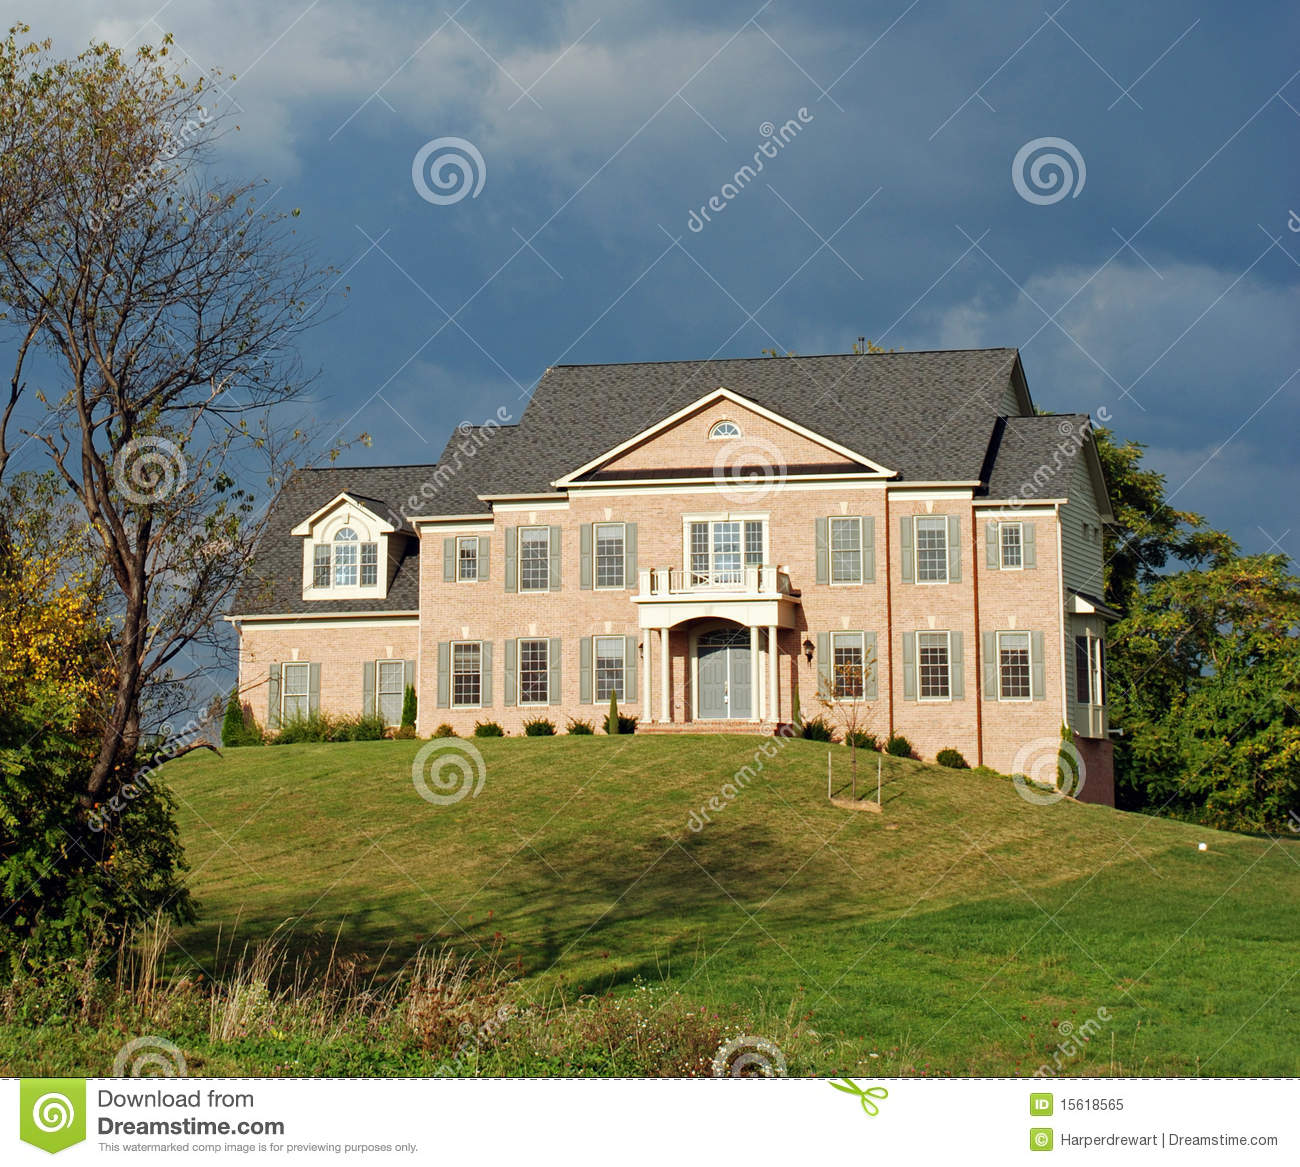 Luxury home 86 royalty free stock photo image 15618565 for Free luxury home images